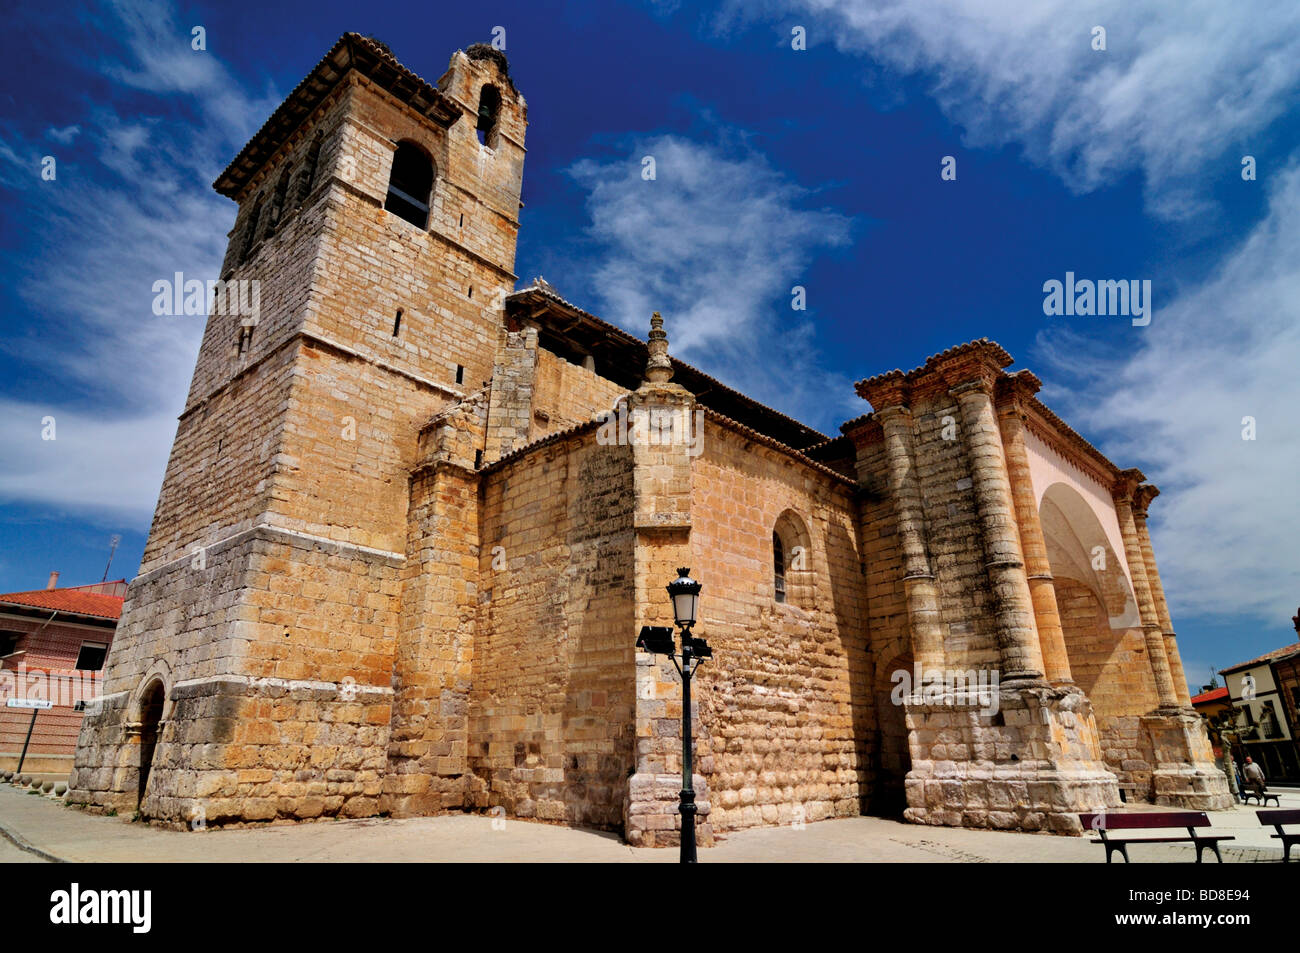 Spain, St. James Way: Iglesia de San Pedro in Fromista - Stock Image